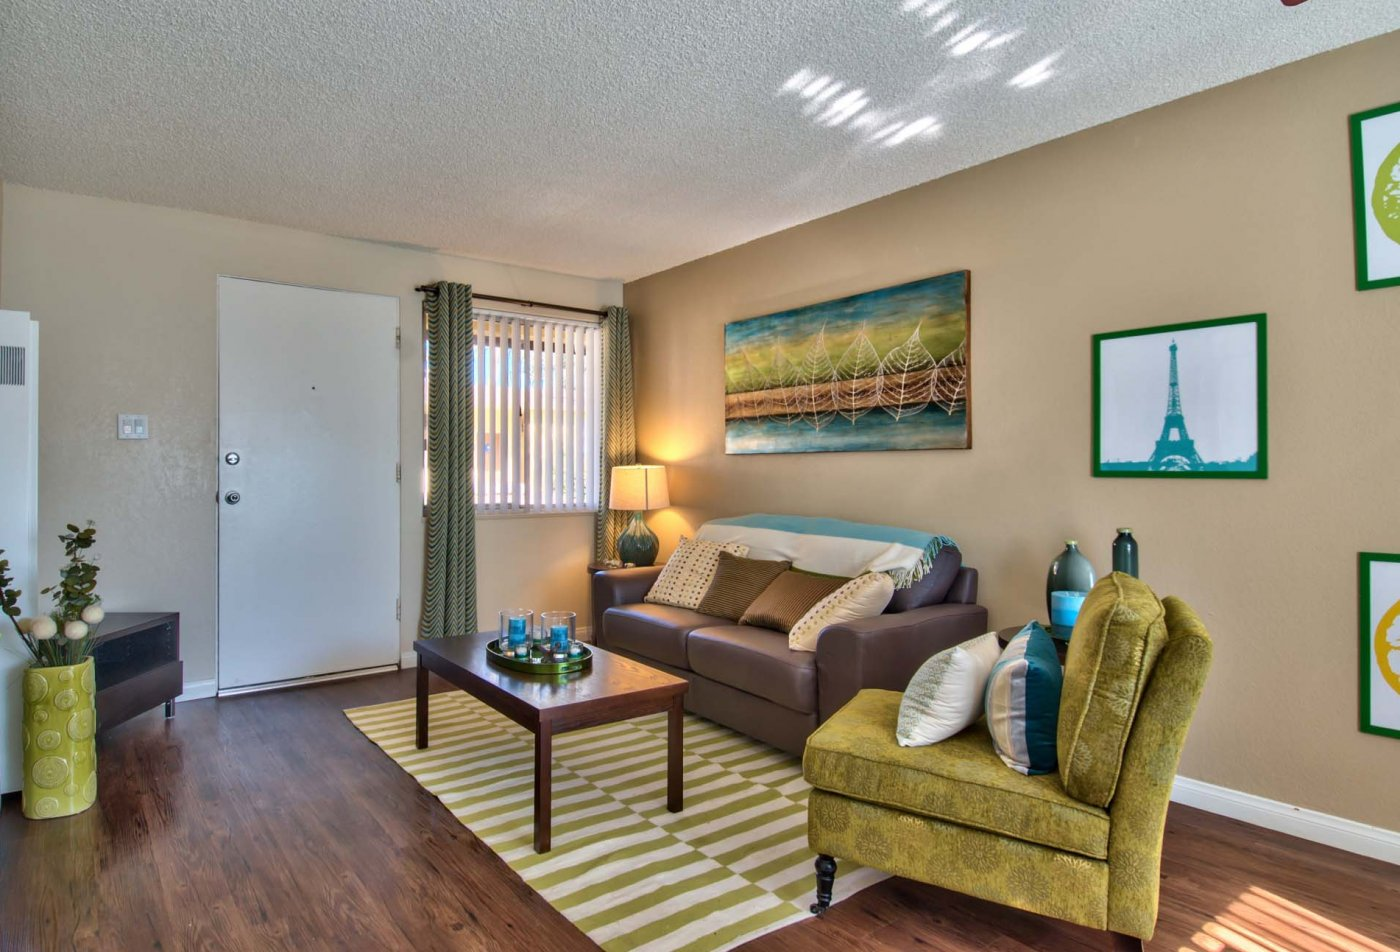 Casitas Apartment Rentals in Ontario, Ca